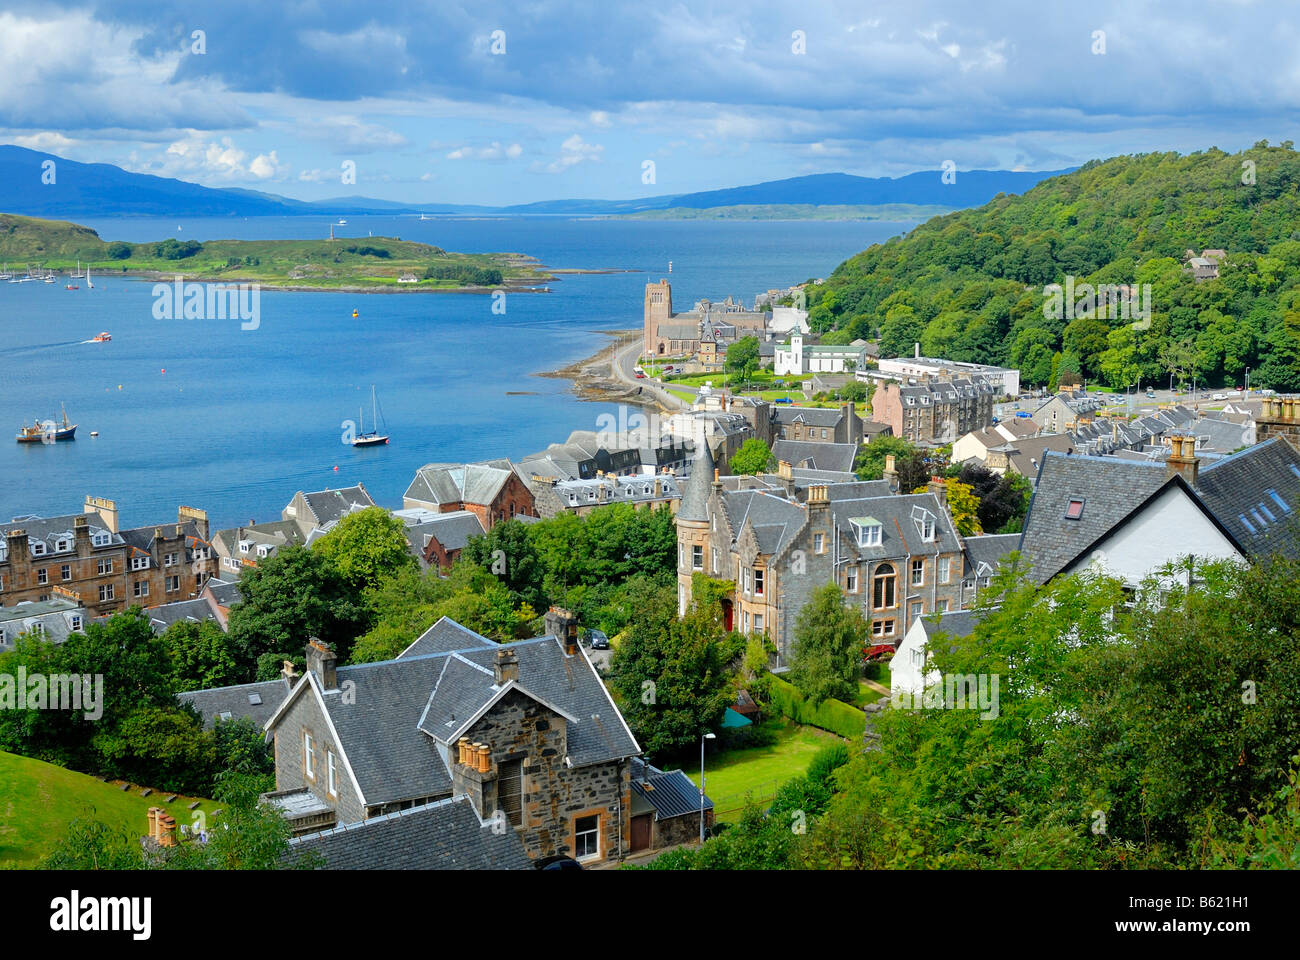 View of the town of Oban, Scotland, Great Britain, Europe - Stock Image